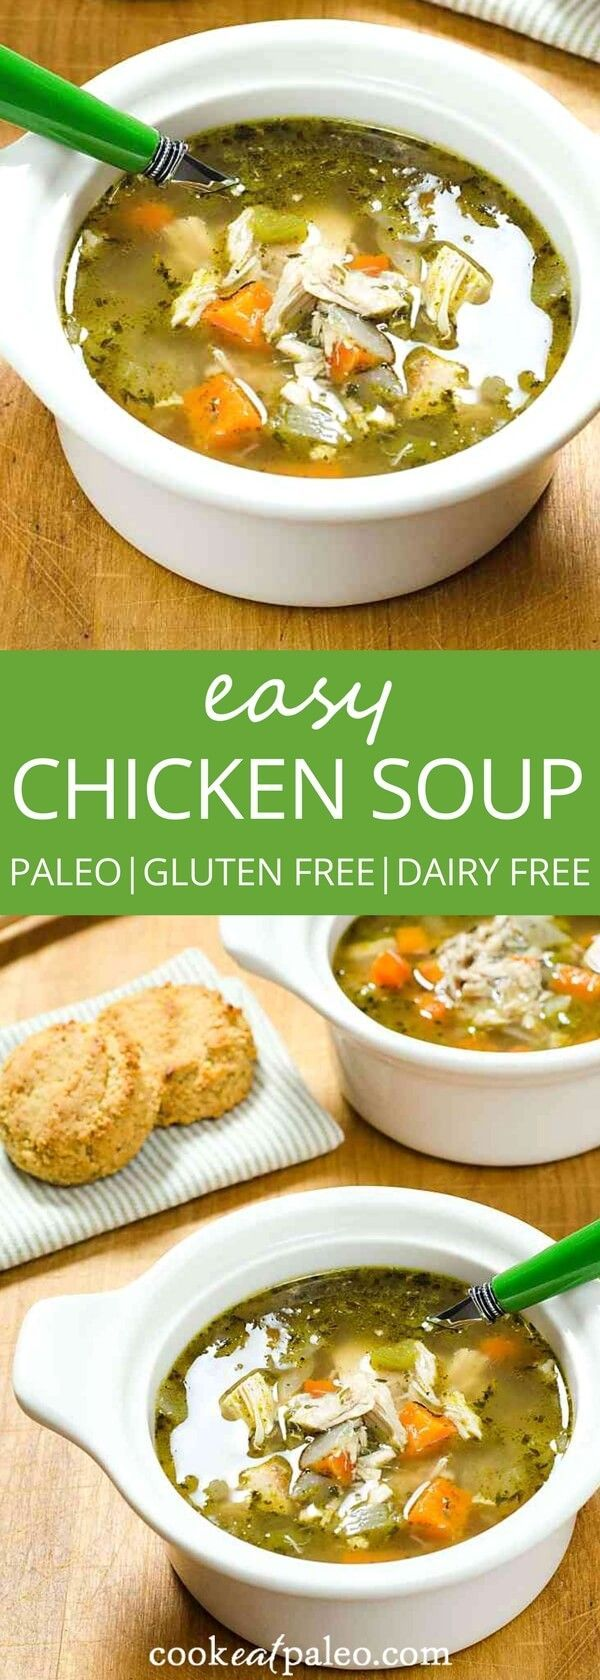 Easy Chicken Soup Recipe Made With Rotisserie Chicken A Great Quick  Alternative To Slow Cooked